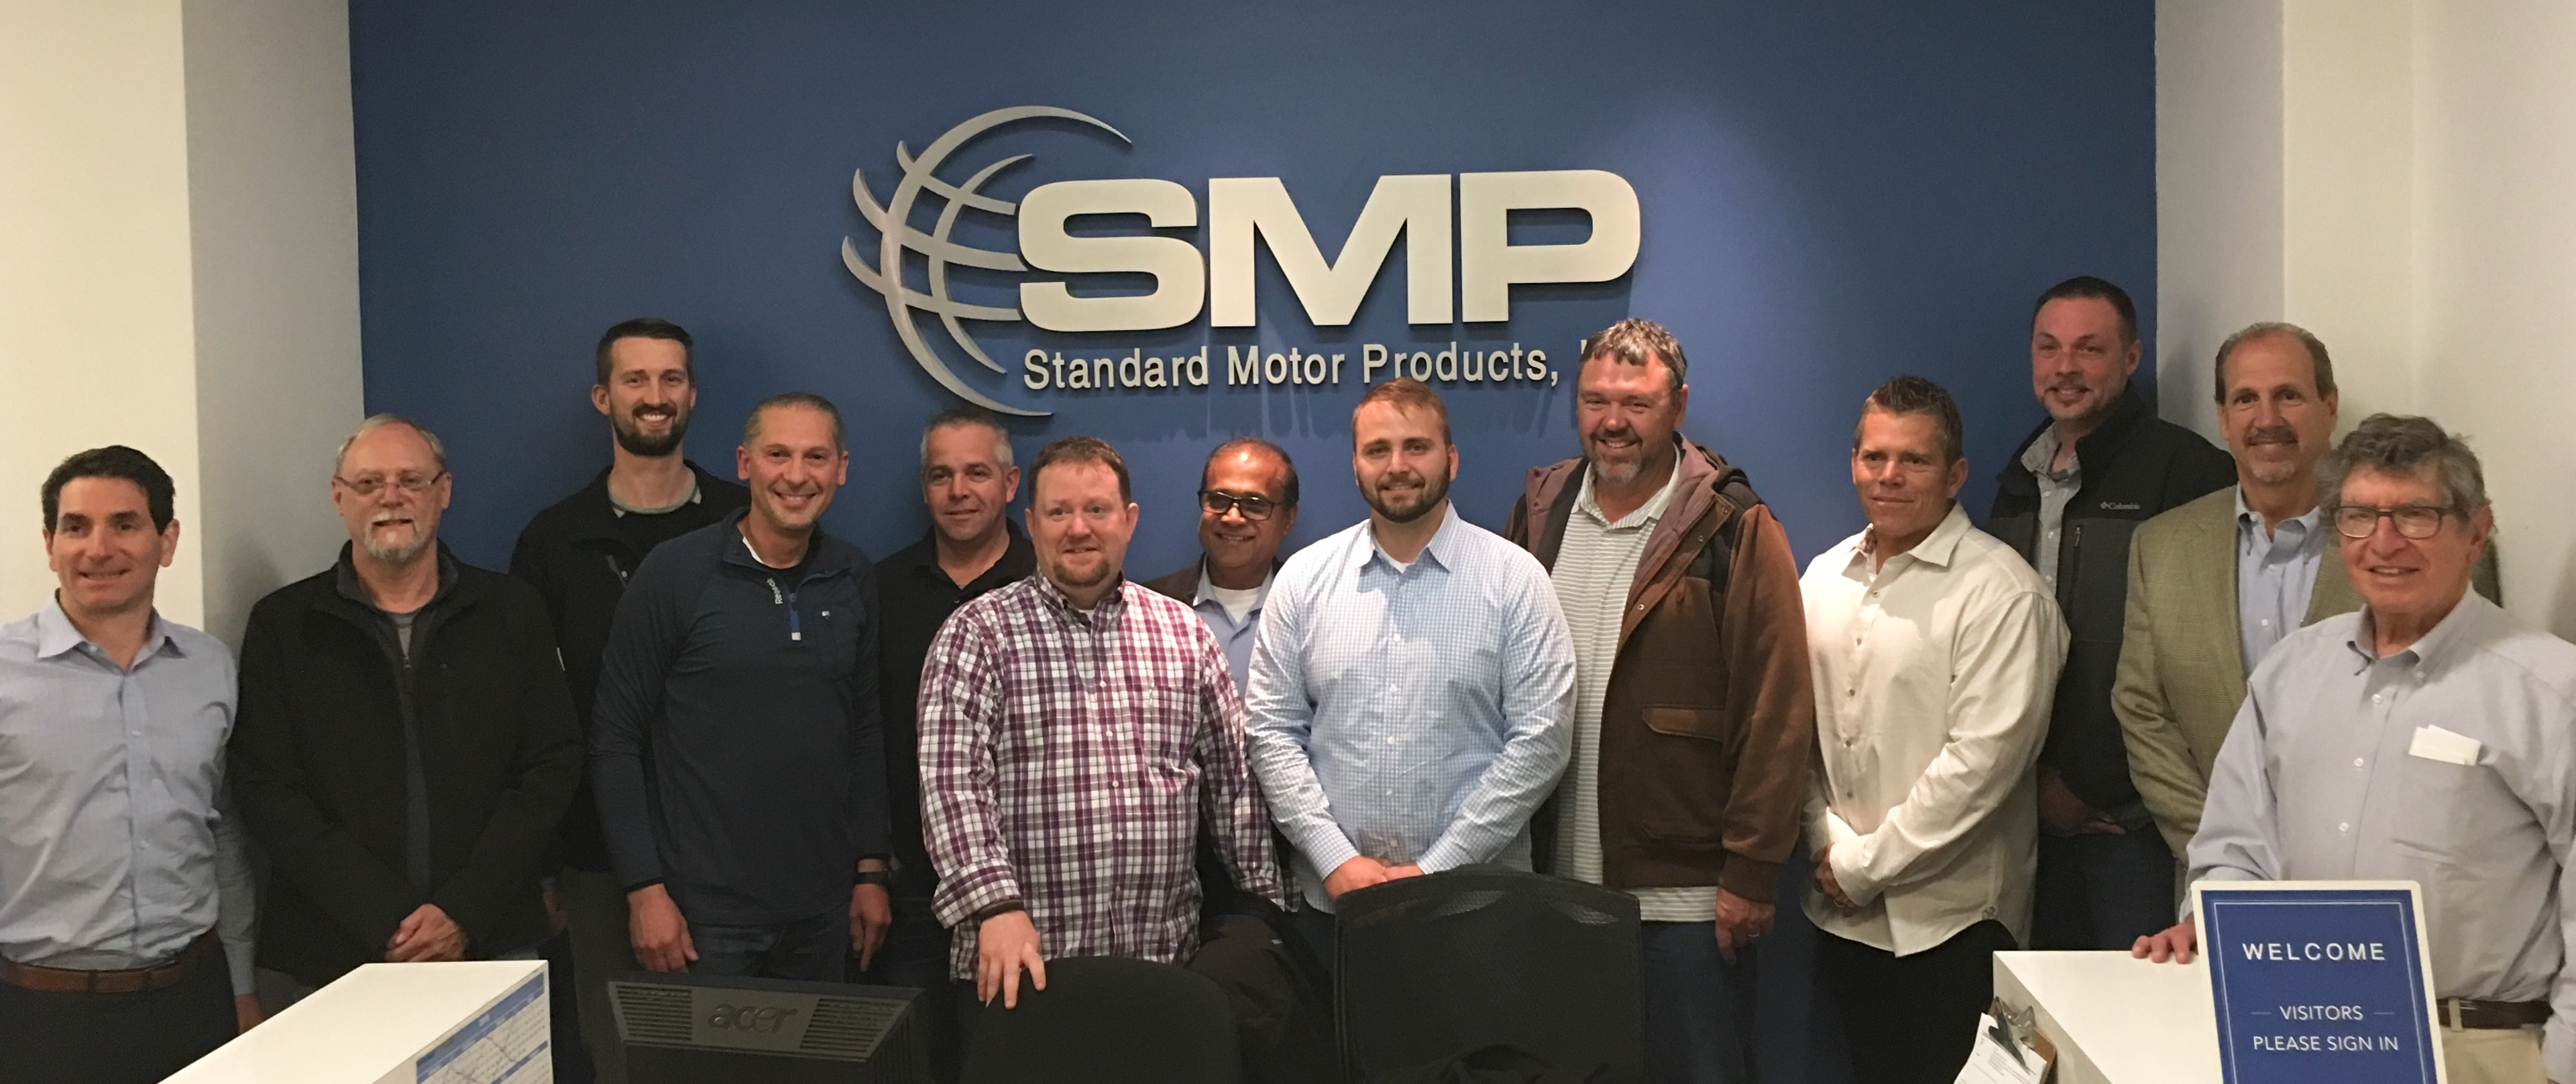 Standard Motor Products hosts Auto Value meeting Auto Service World